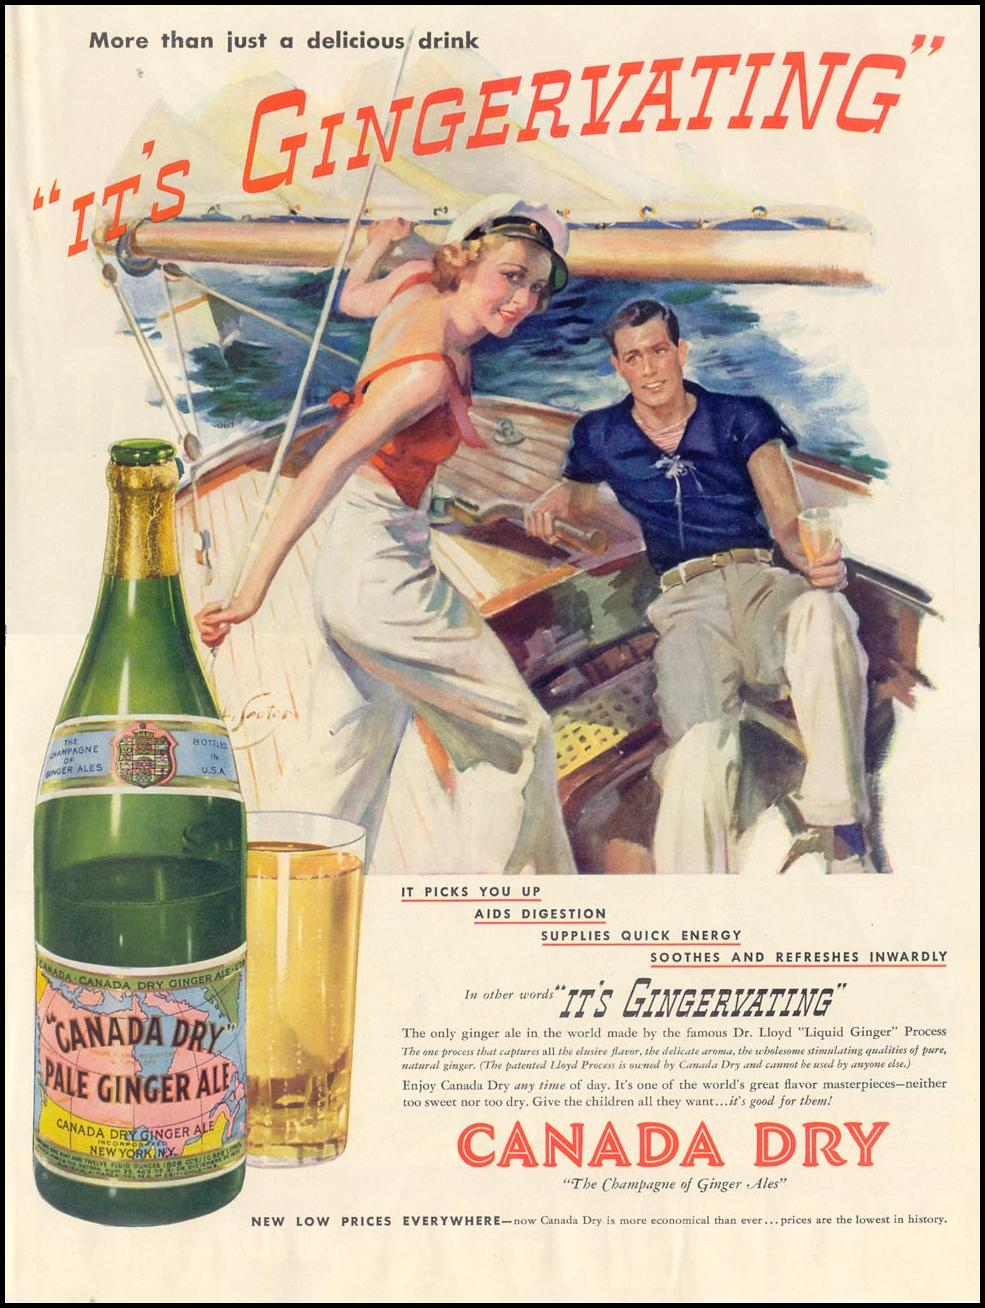 CANADA DRY GINGER ALE LIFE 08/30/1937